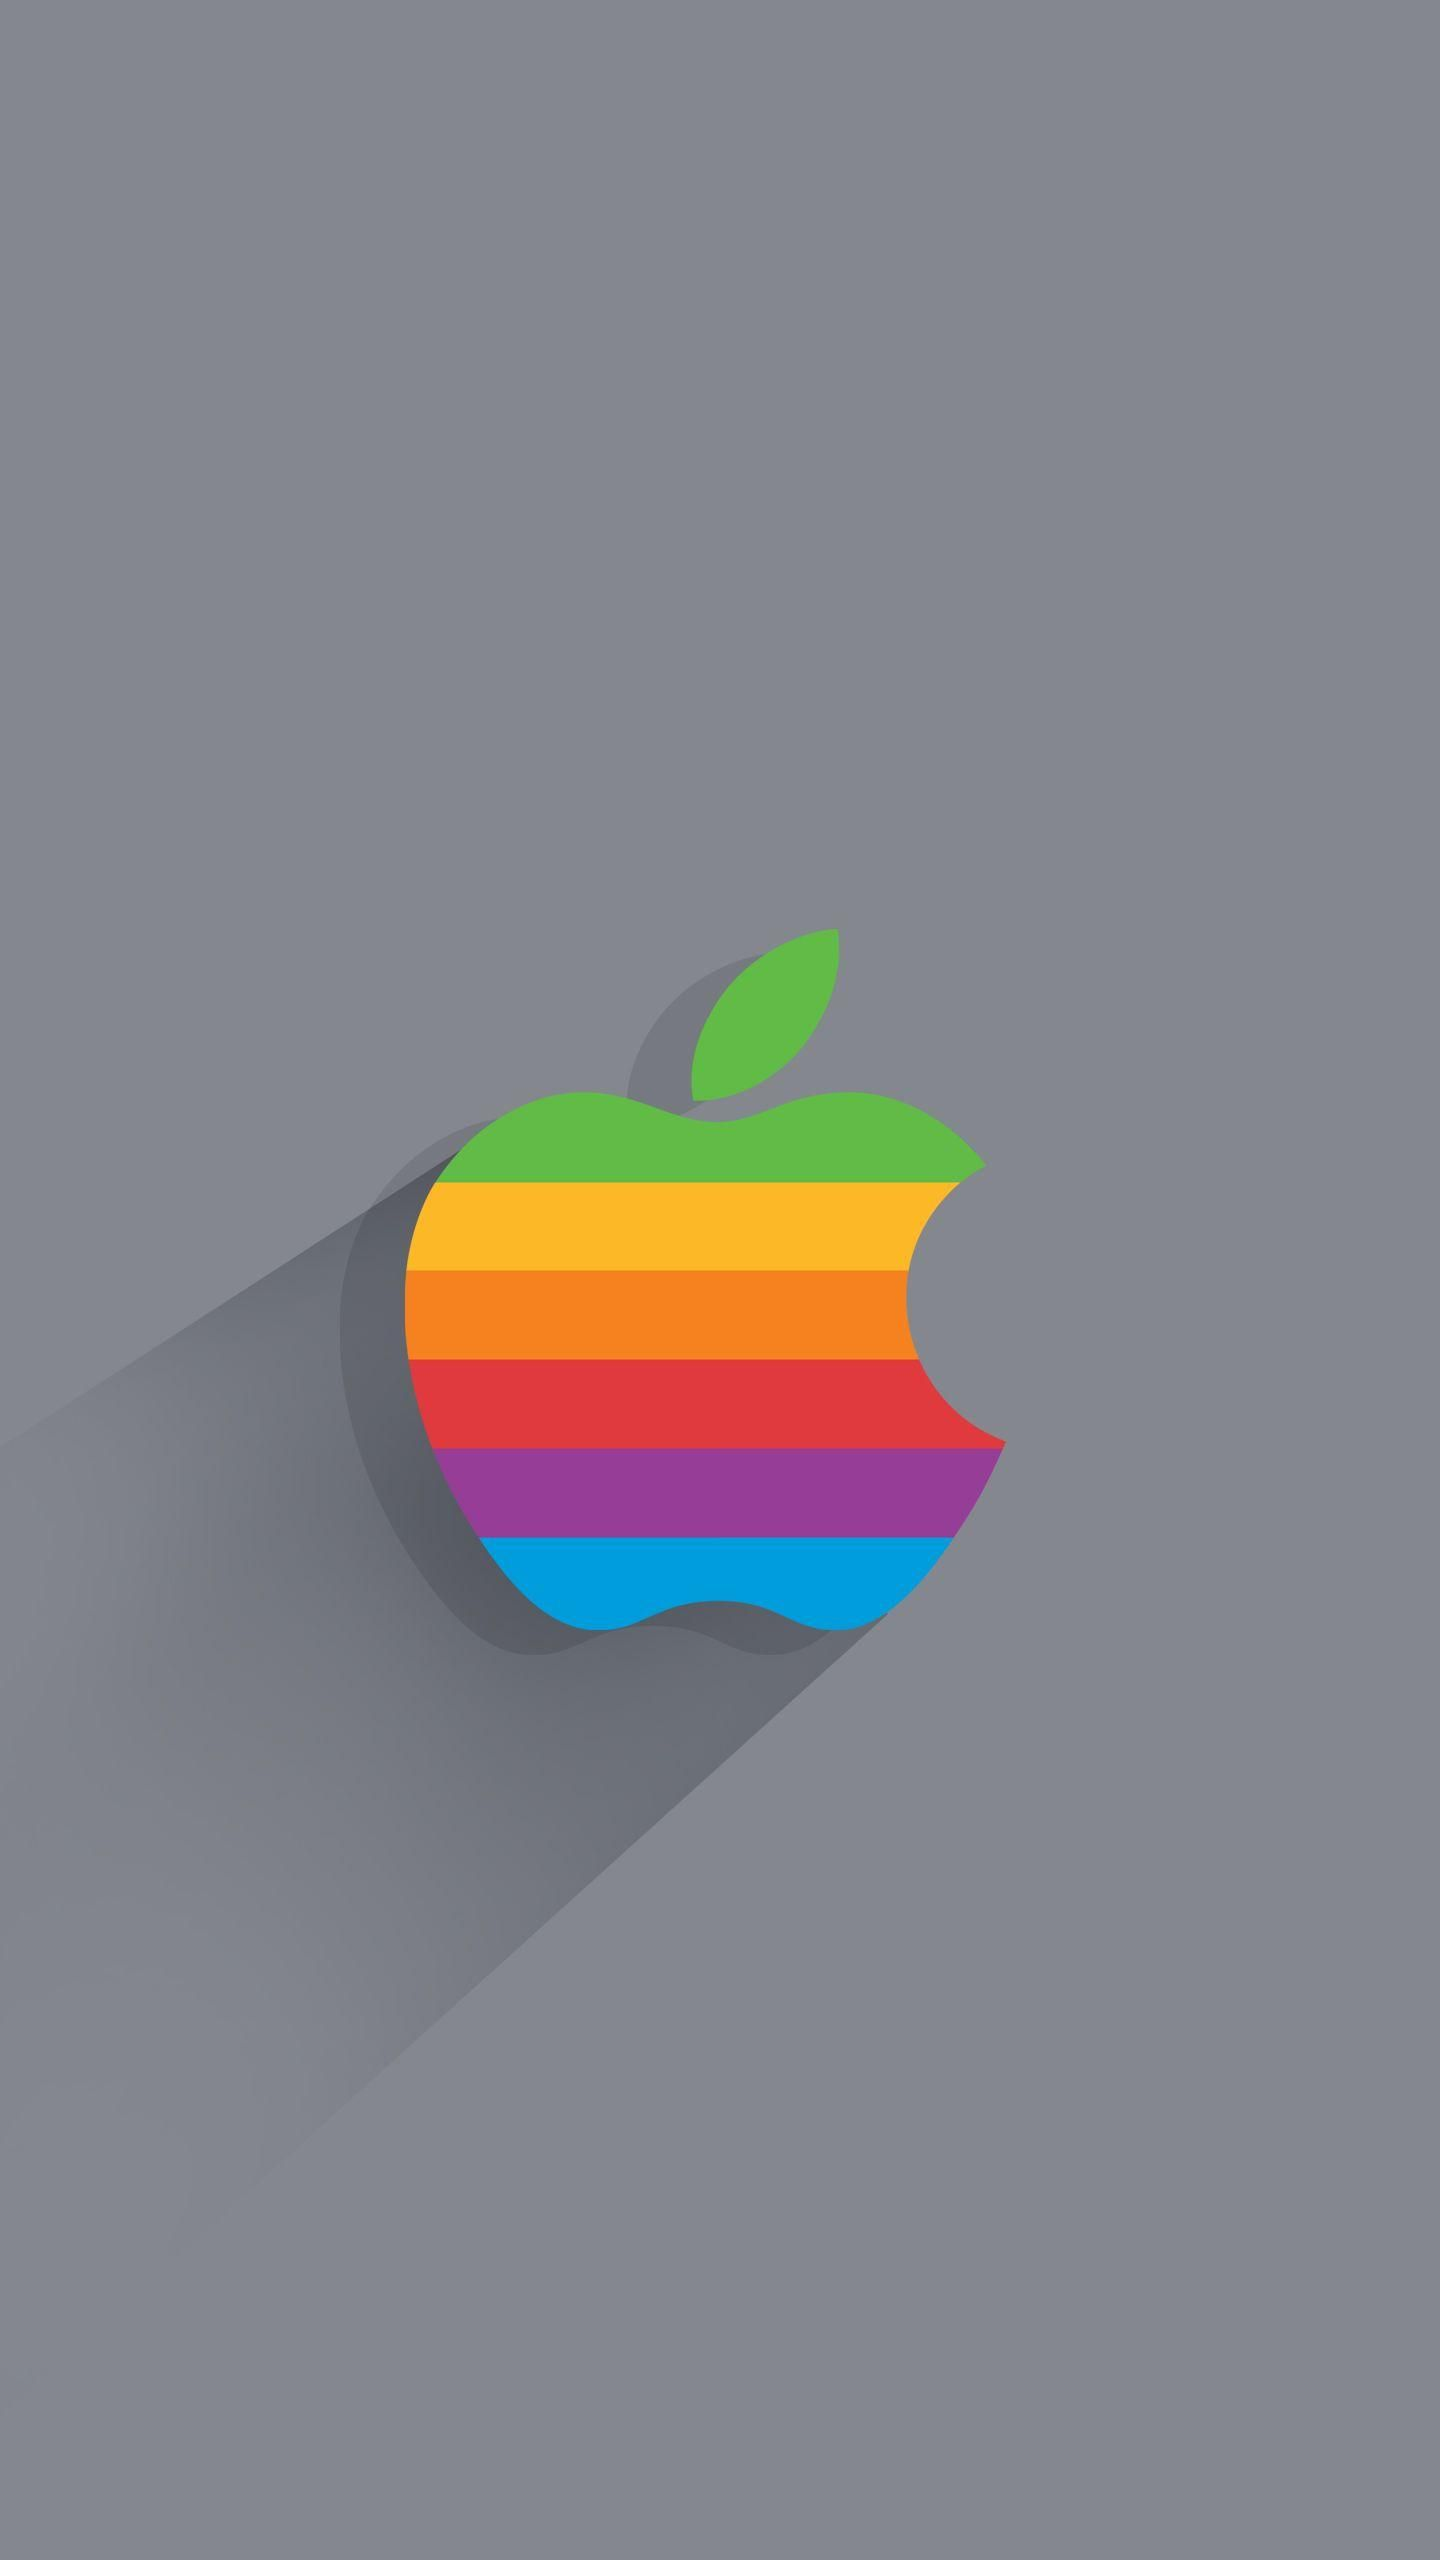 Iphone 12 Apple Logo Wallpapers Iphone 12 Pro Max Iphone 12 Iphone Wallpaper Ipad Mac Apple Logo Wallpaper Apple Logo Wallpaper Iphone Apple Logo